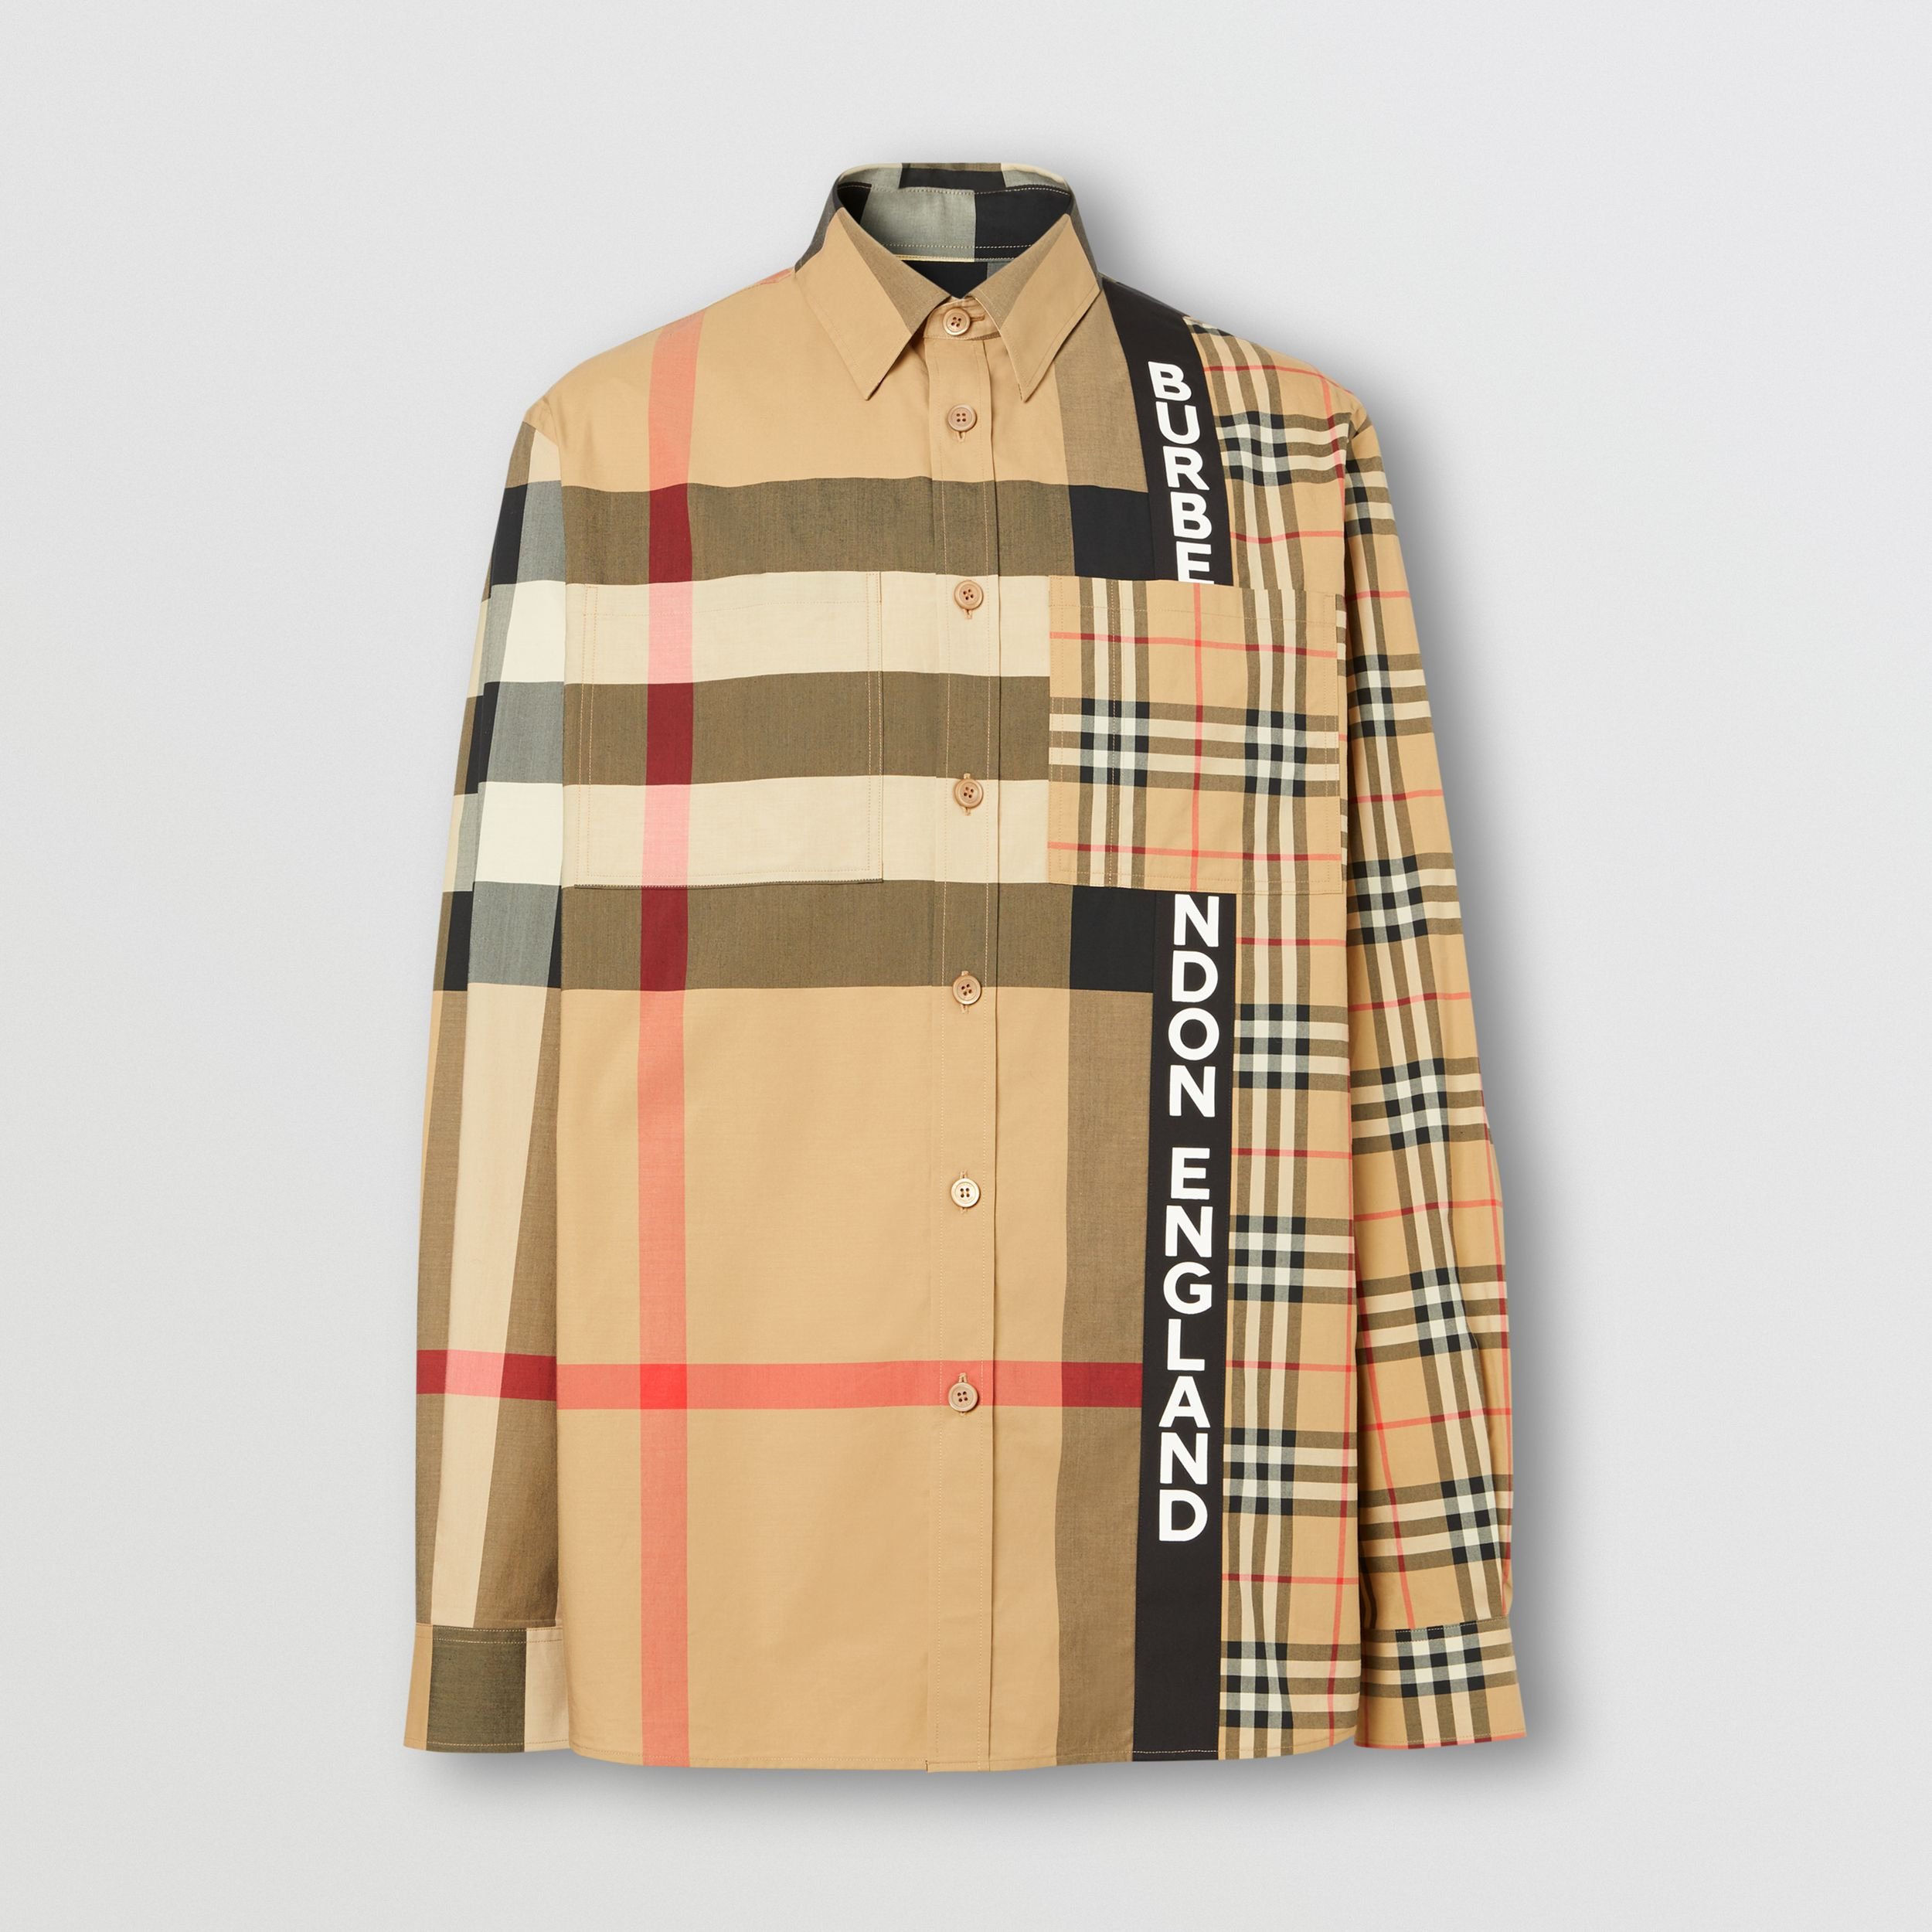 Logo Print Patchwork Check Cotton Oversized Shirt in Archive Beige - Men | Burberry - 4